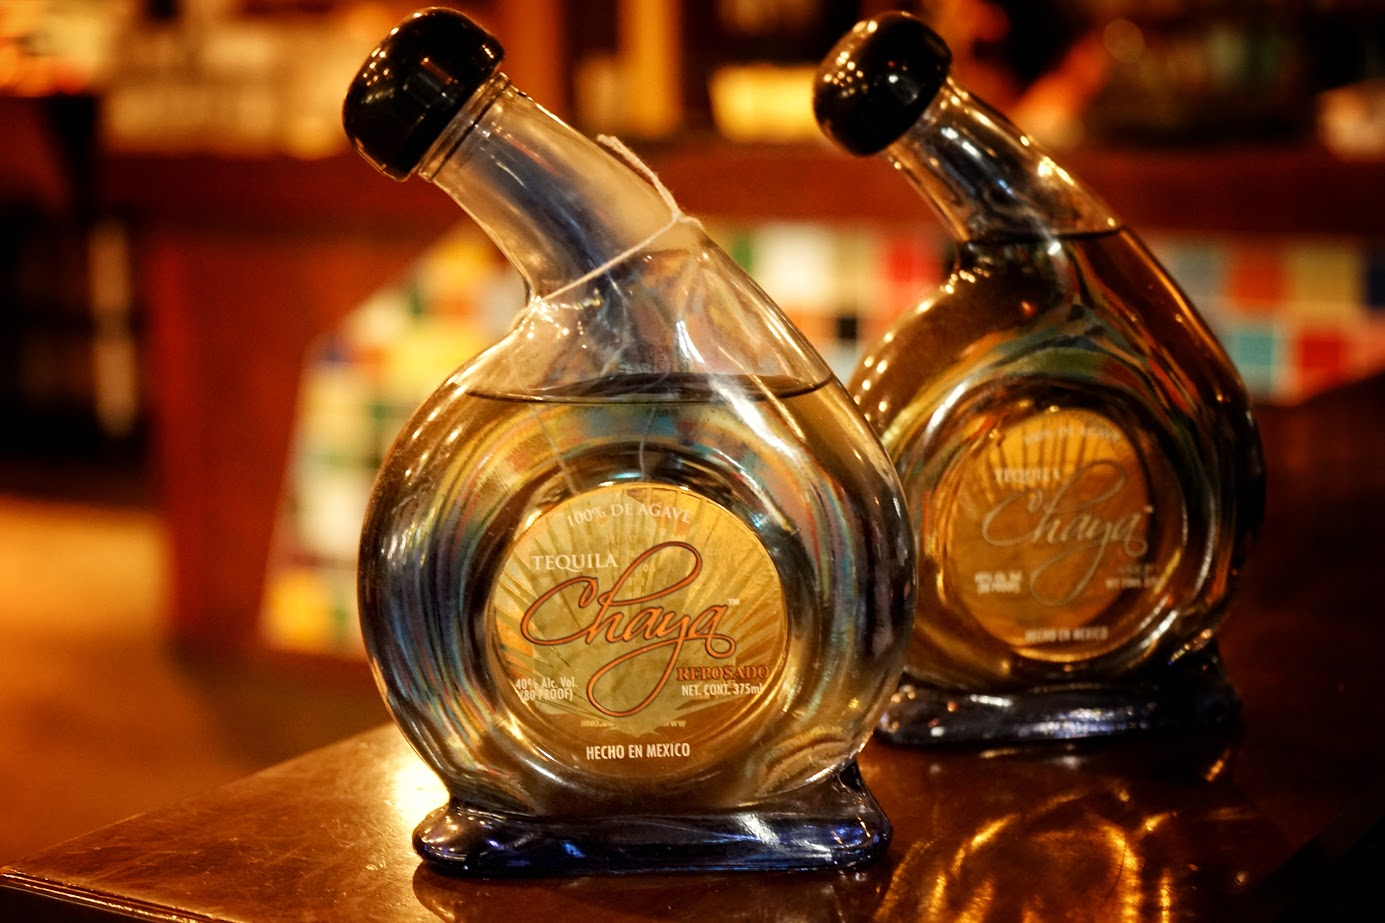 Chaya || Tequila of the Week